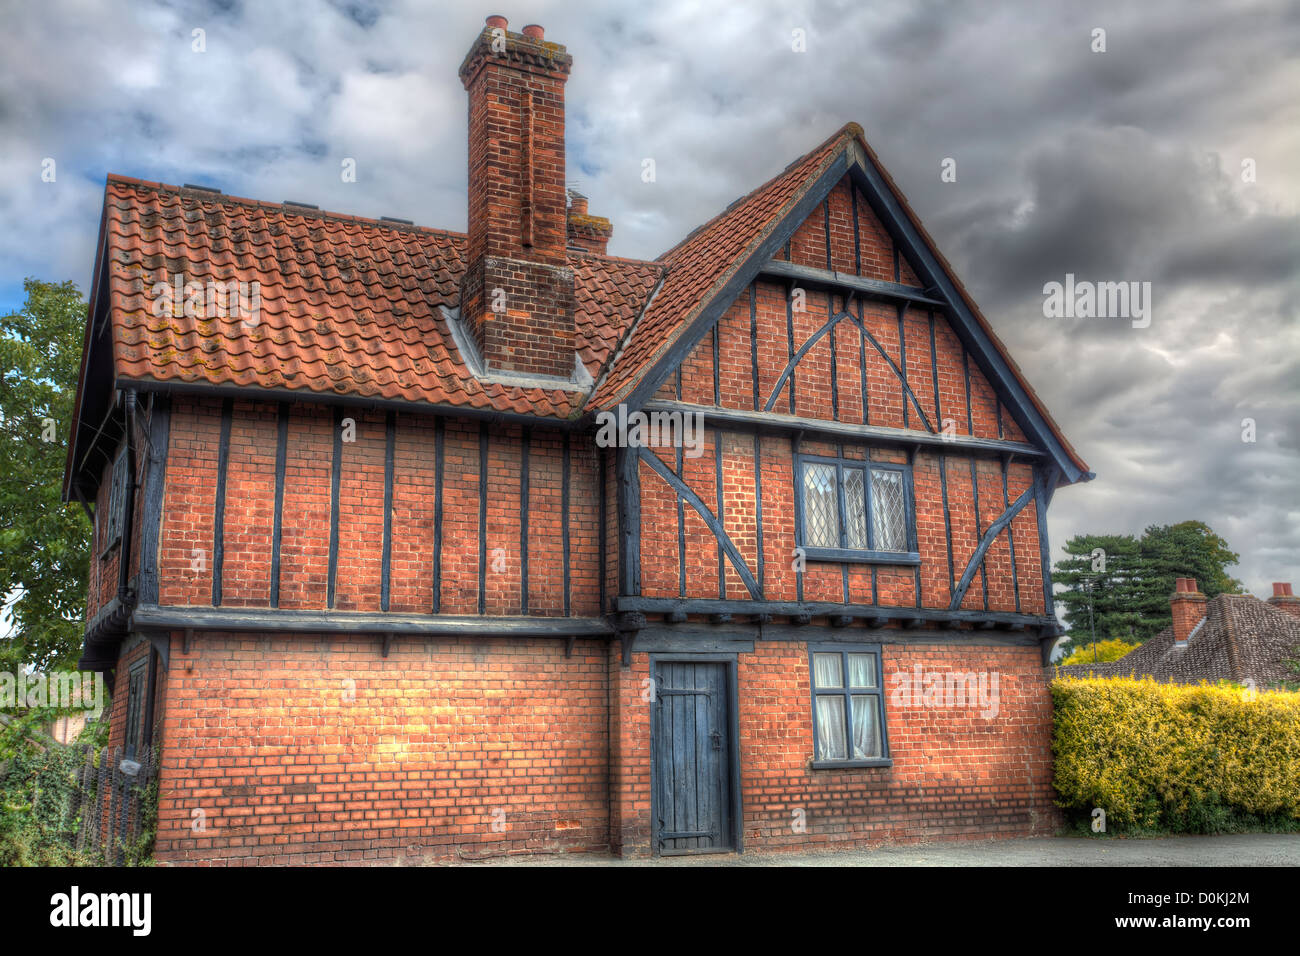 A timber-framed Tudor house in a rural Cambridgeshire ...